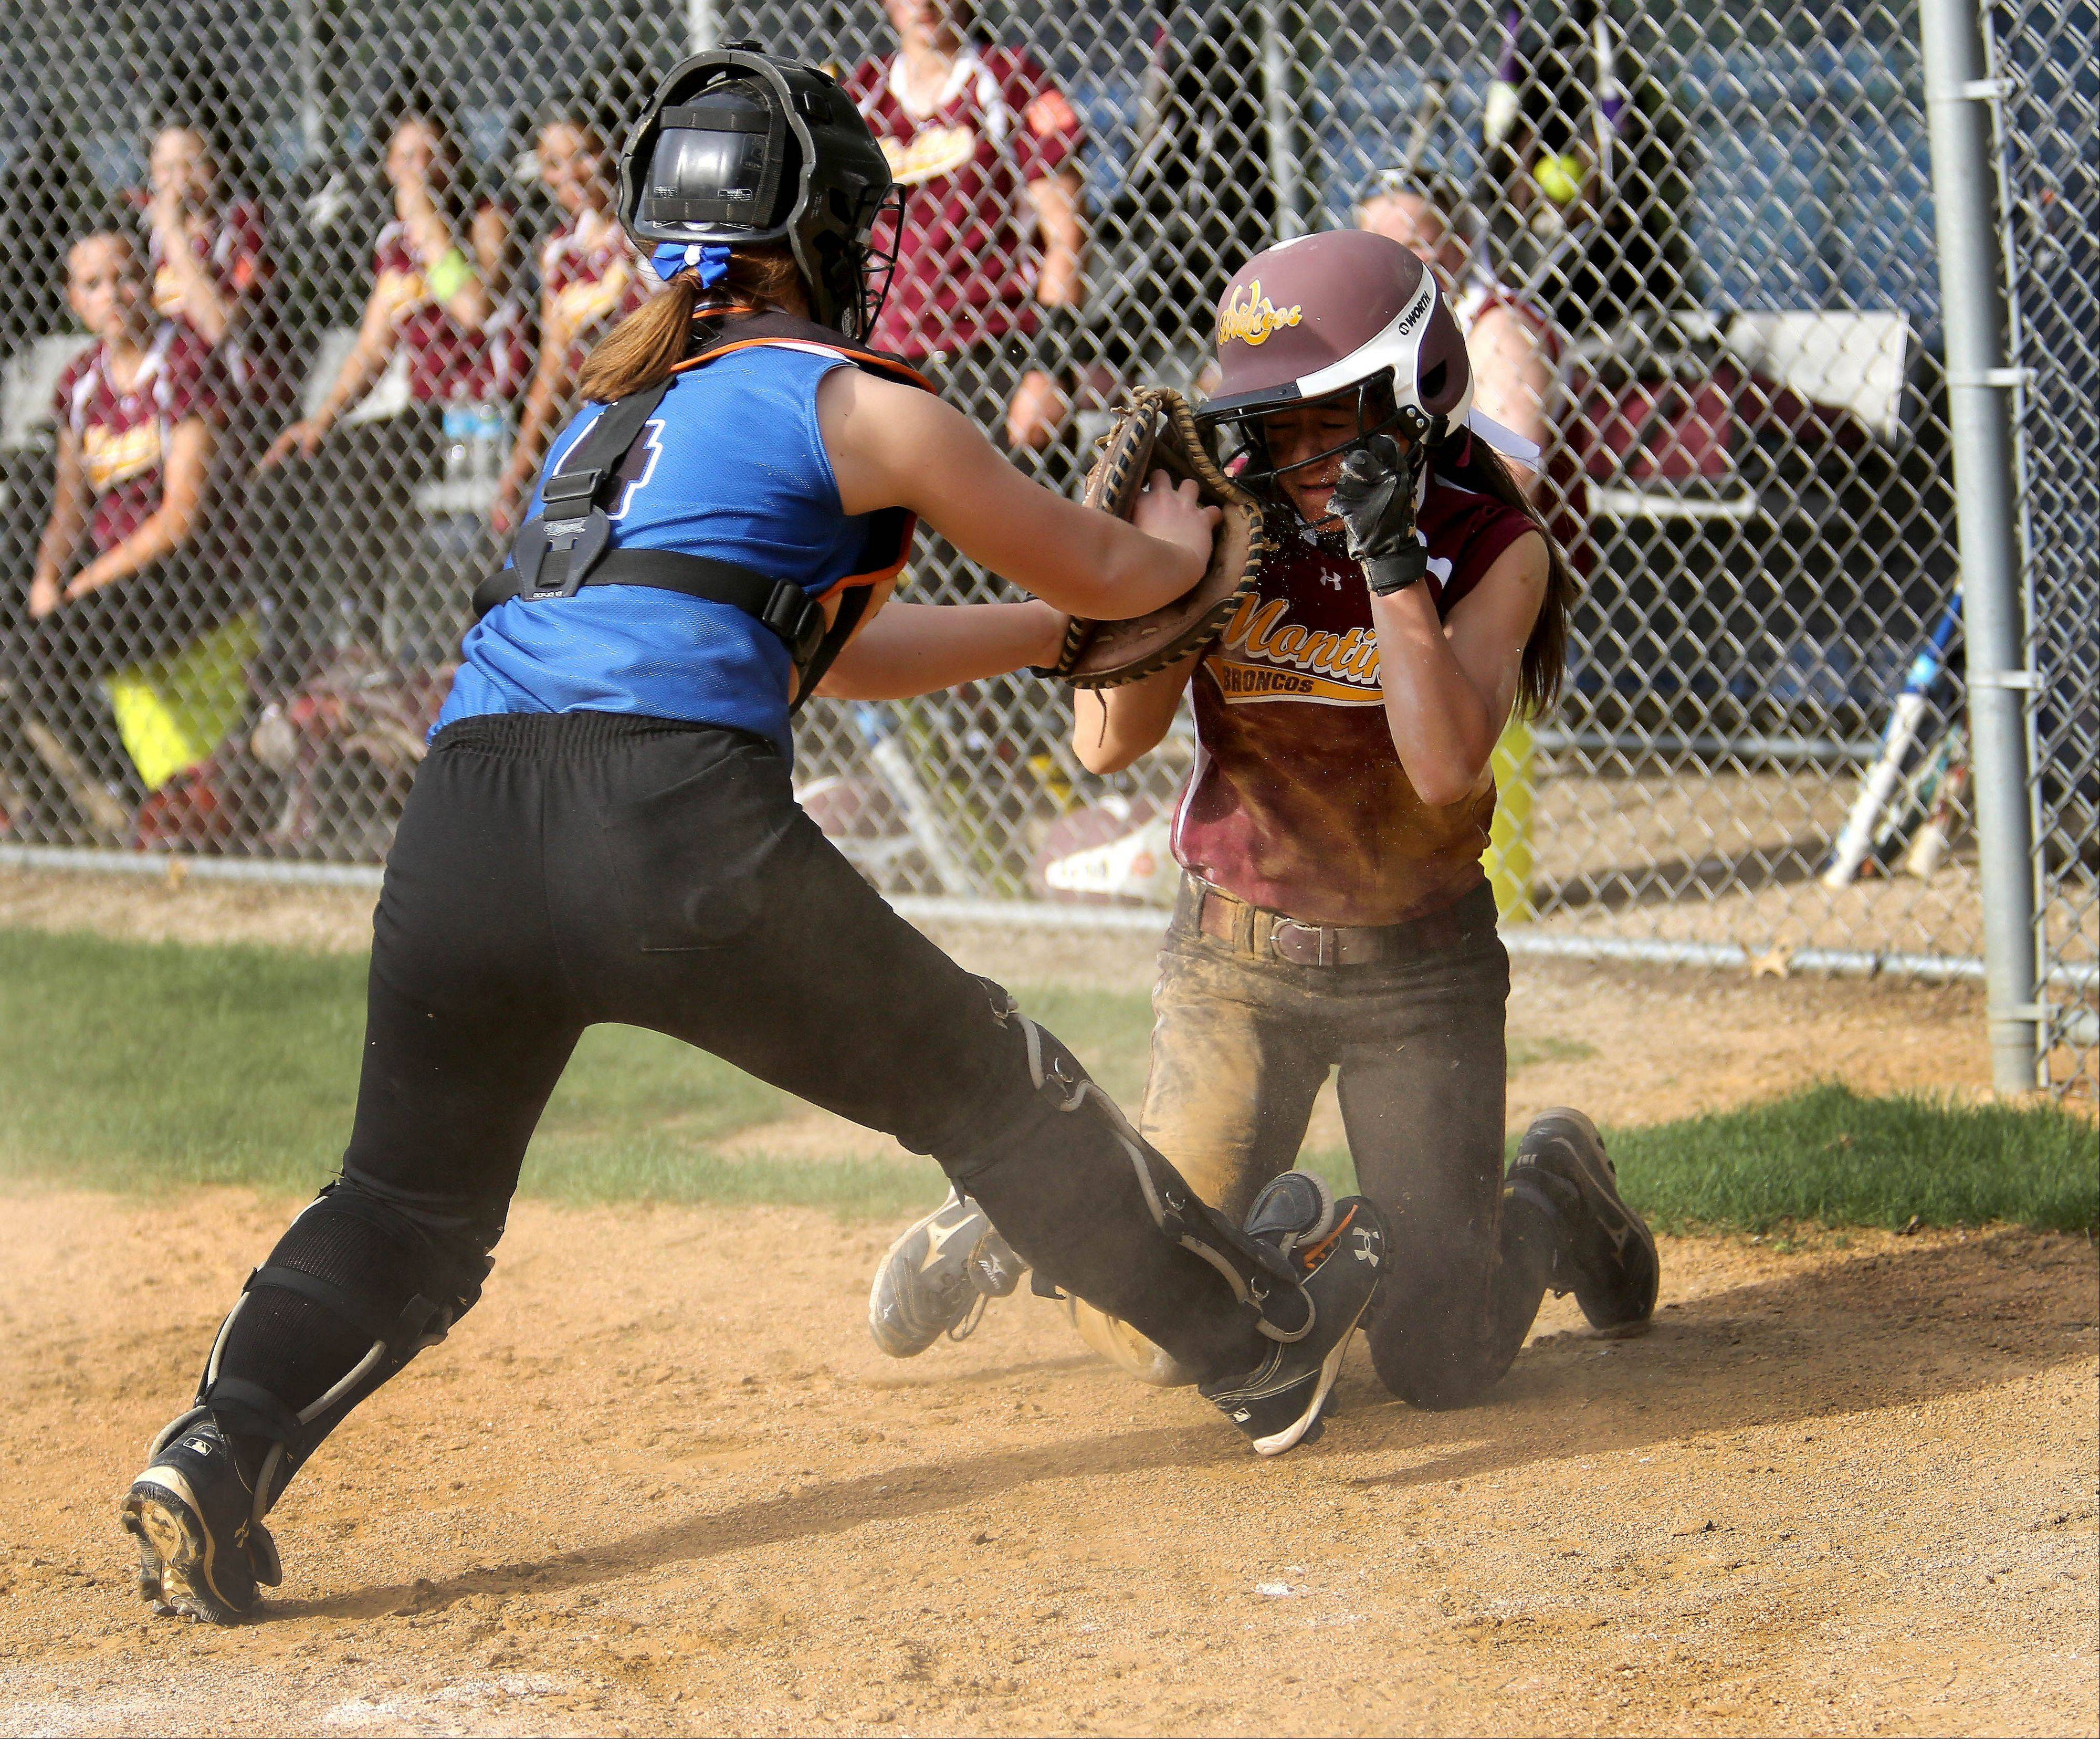 St. Francis catcher Fiona Summers tags out Isabell Alexander of Montini Catholic at home plate during girls softball on Monday in Wheaton.